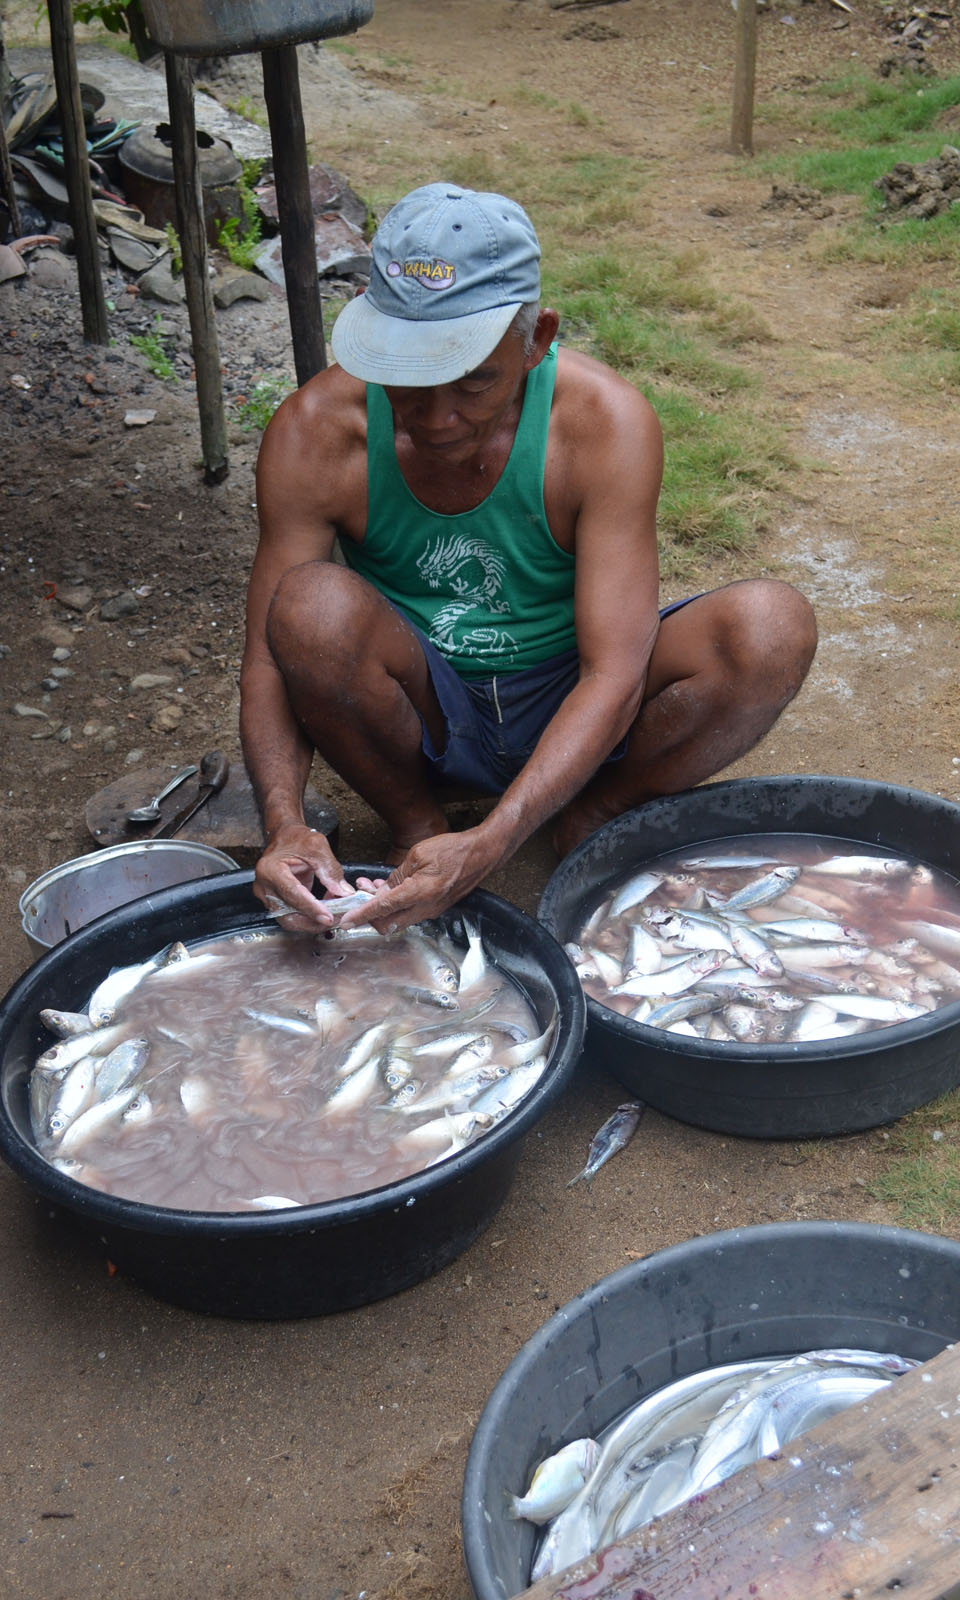 A fisher in Tinambac, Philippines cleans his catch.